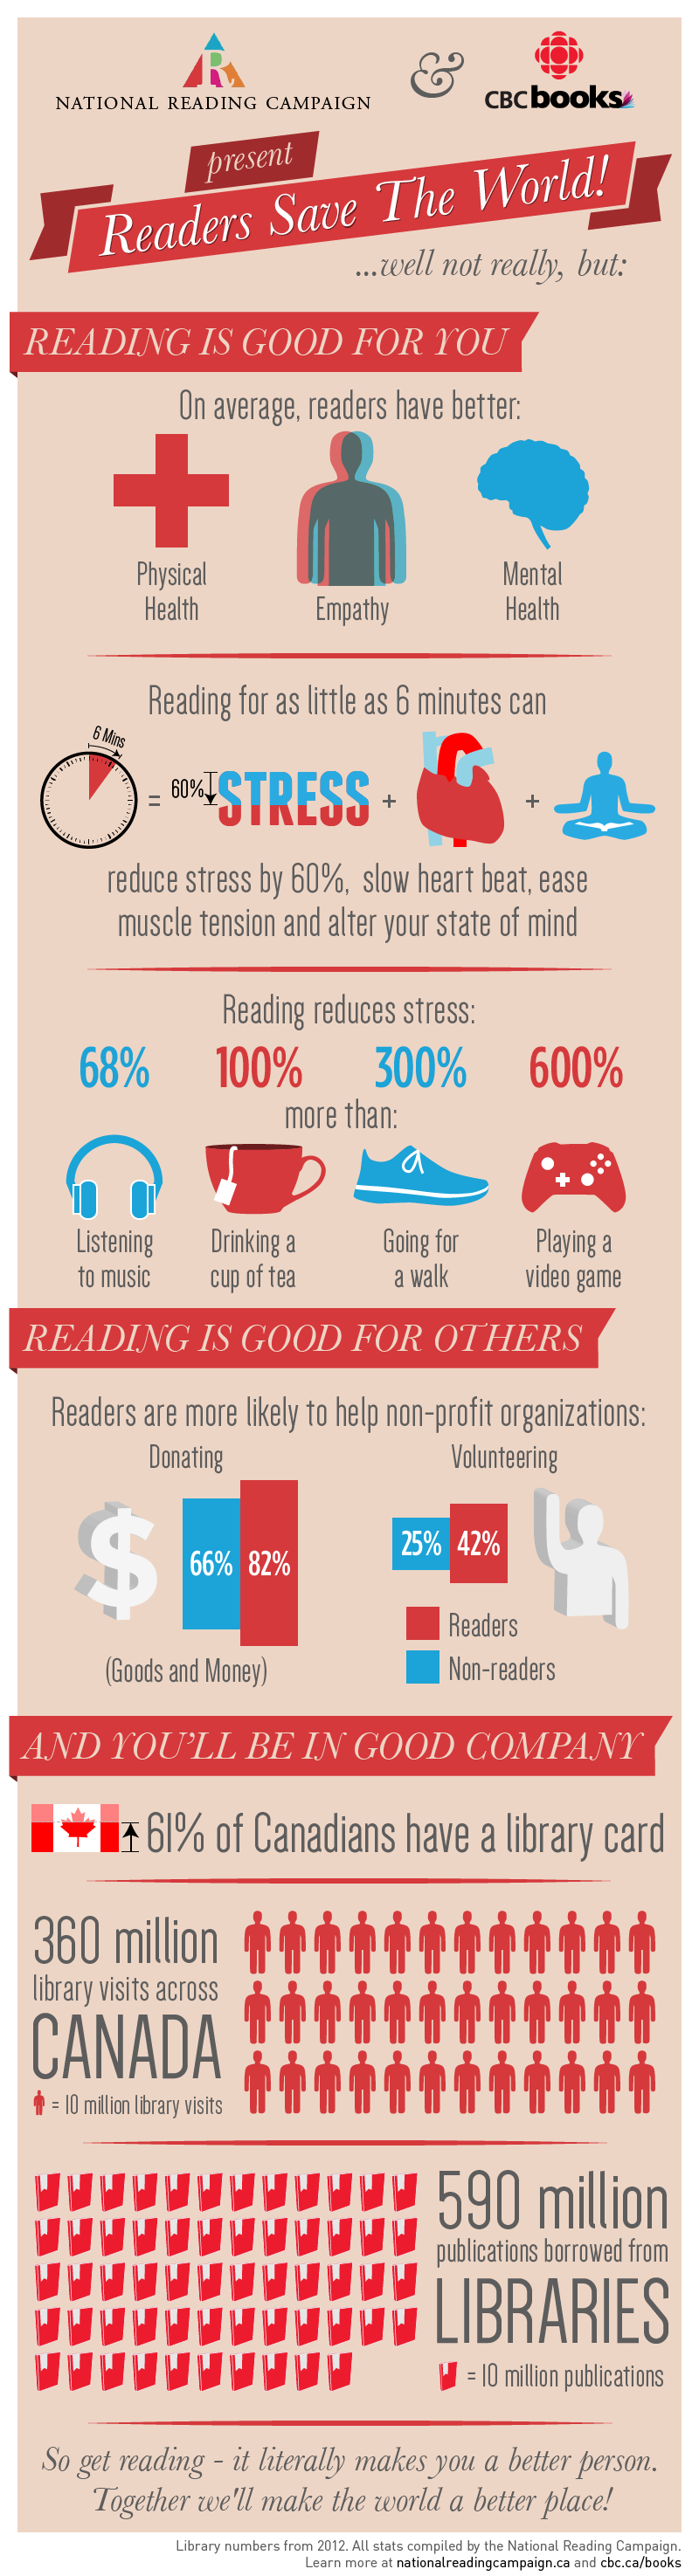 Top 10 Health Benefits of Reading